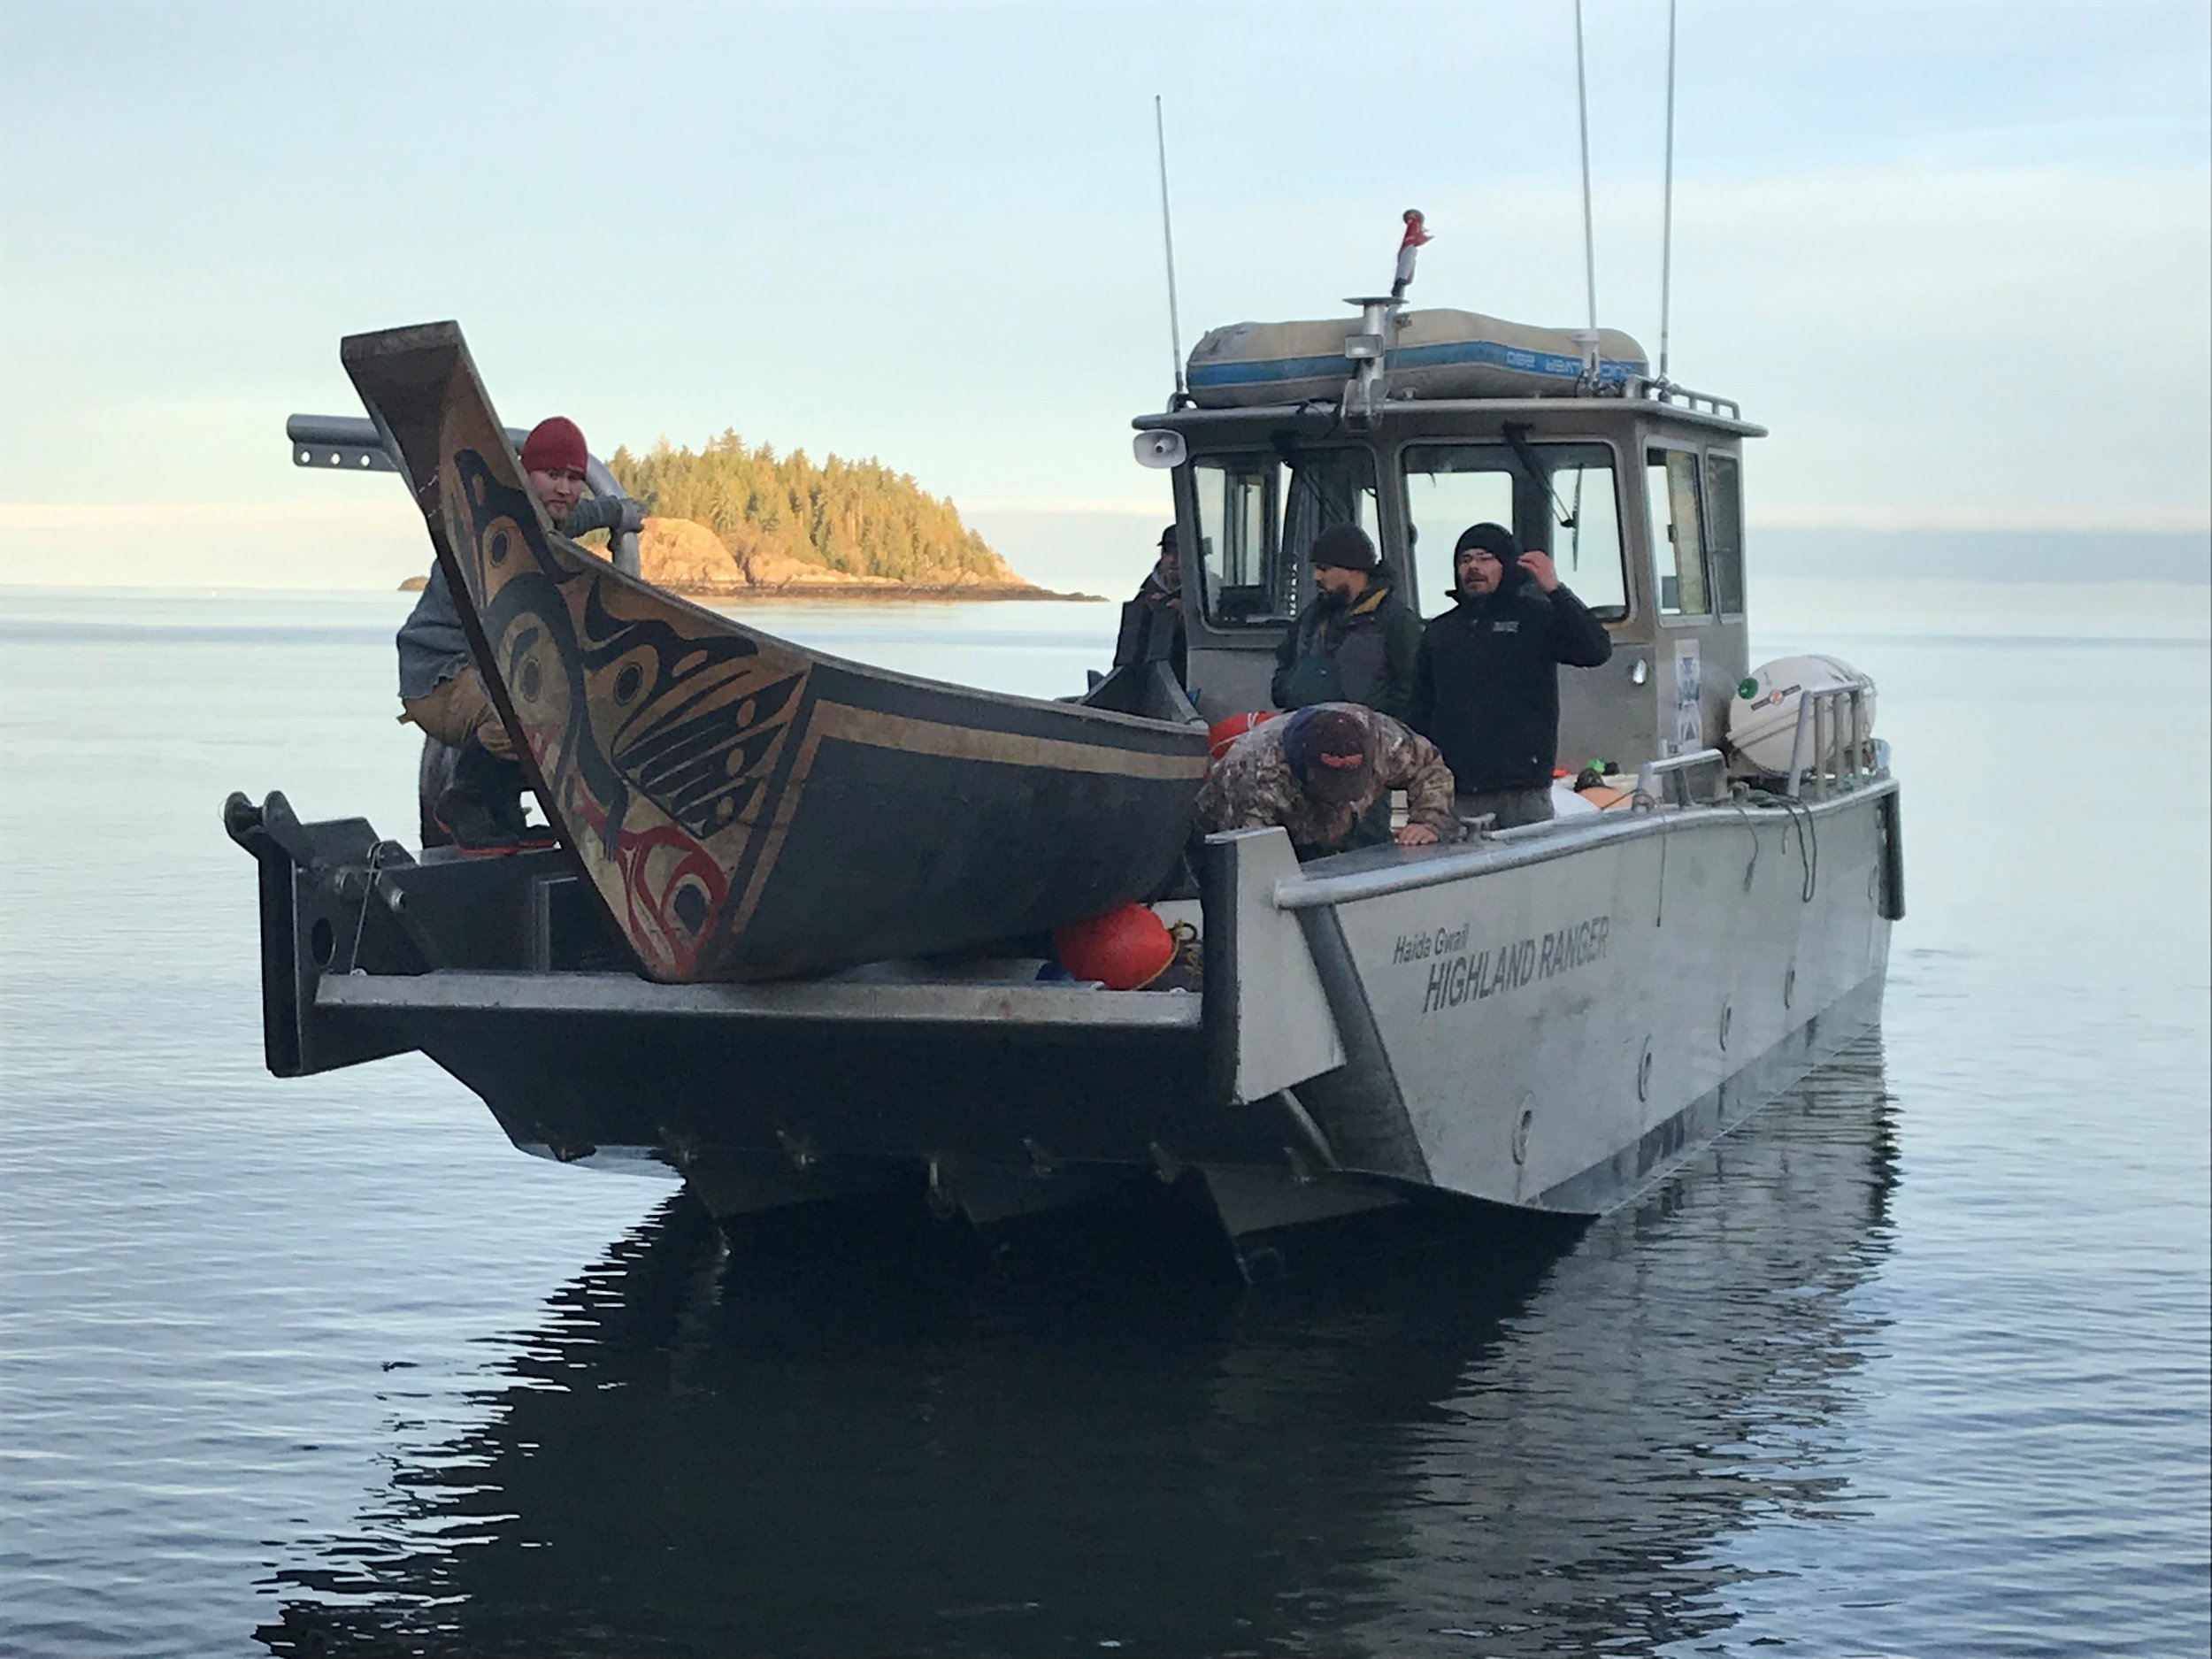 Canoe transport from West Coast to The Haida Heritage Centre at Ḵay Llnagaay. Special delivery!